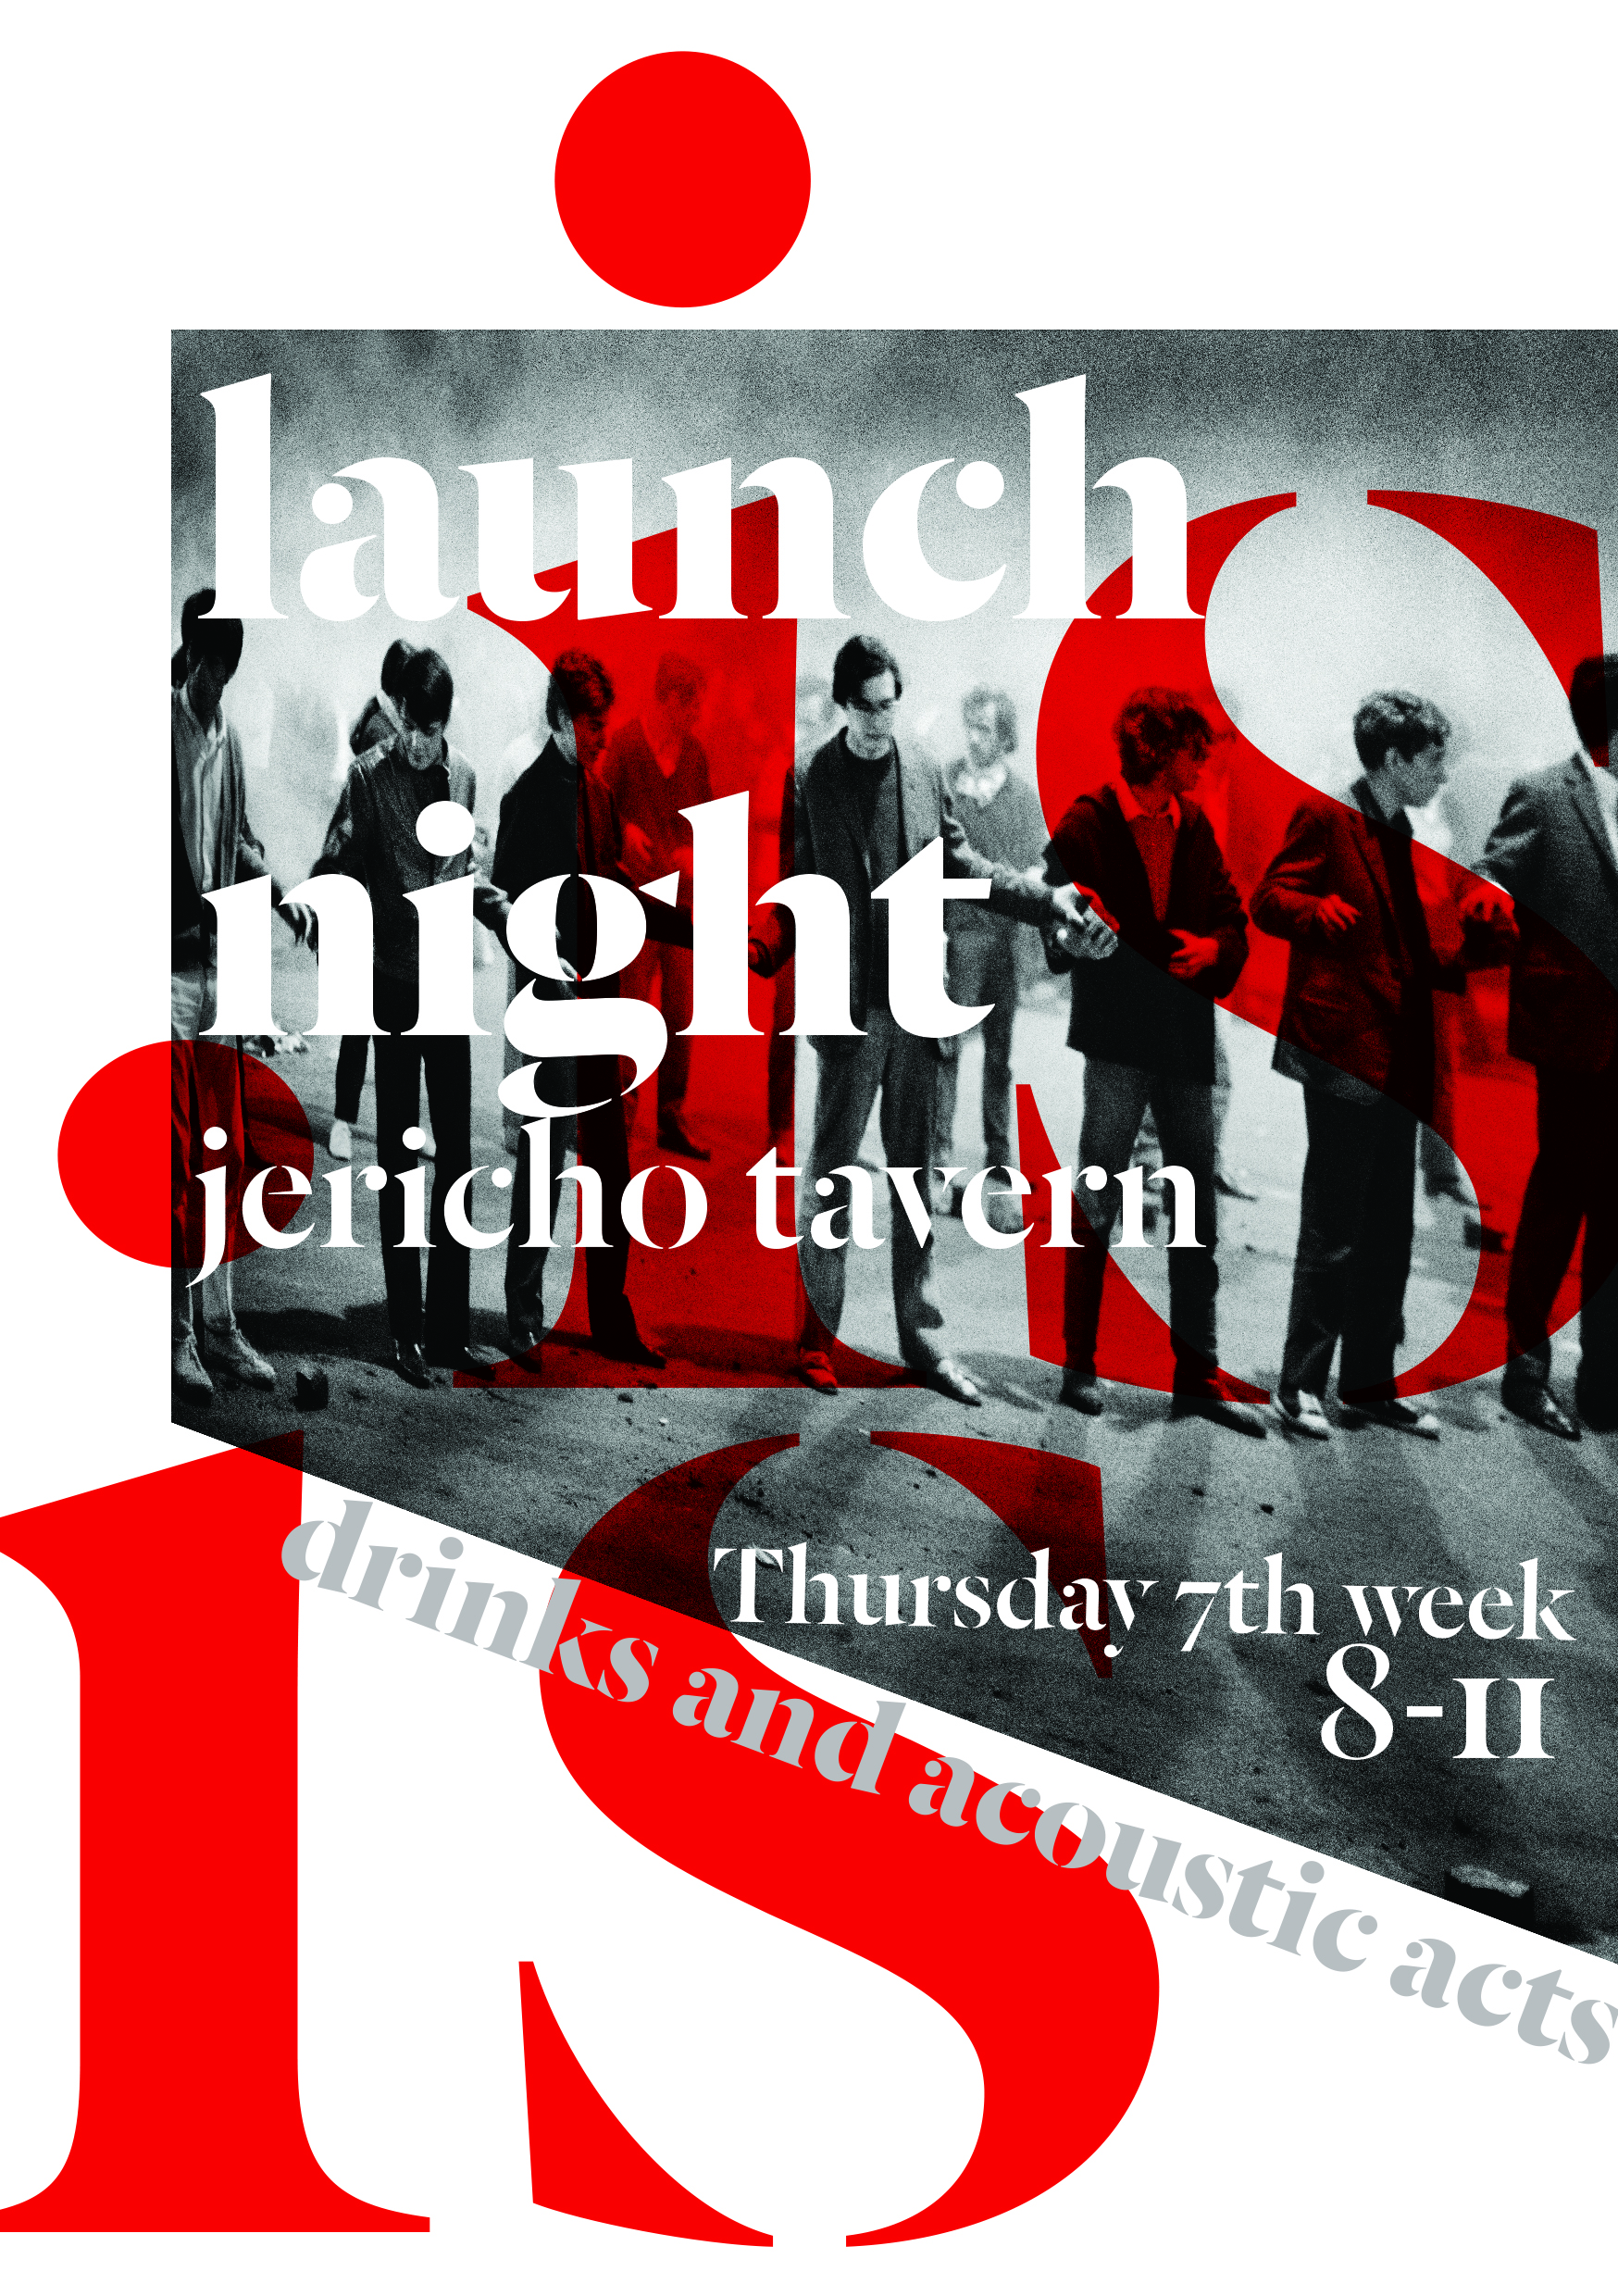 isis launch night